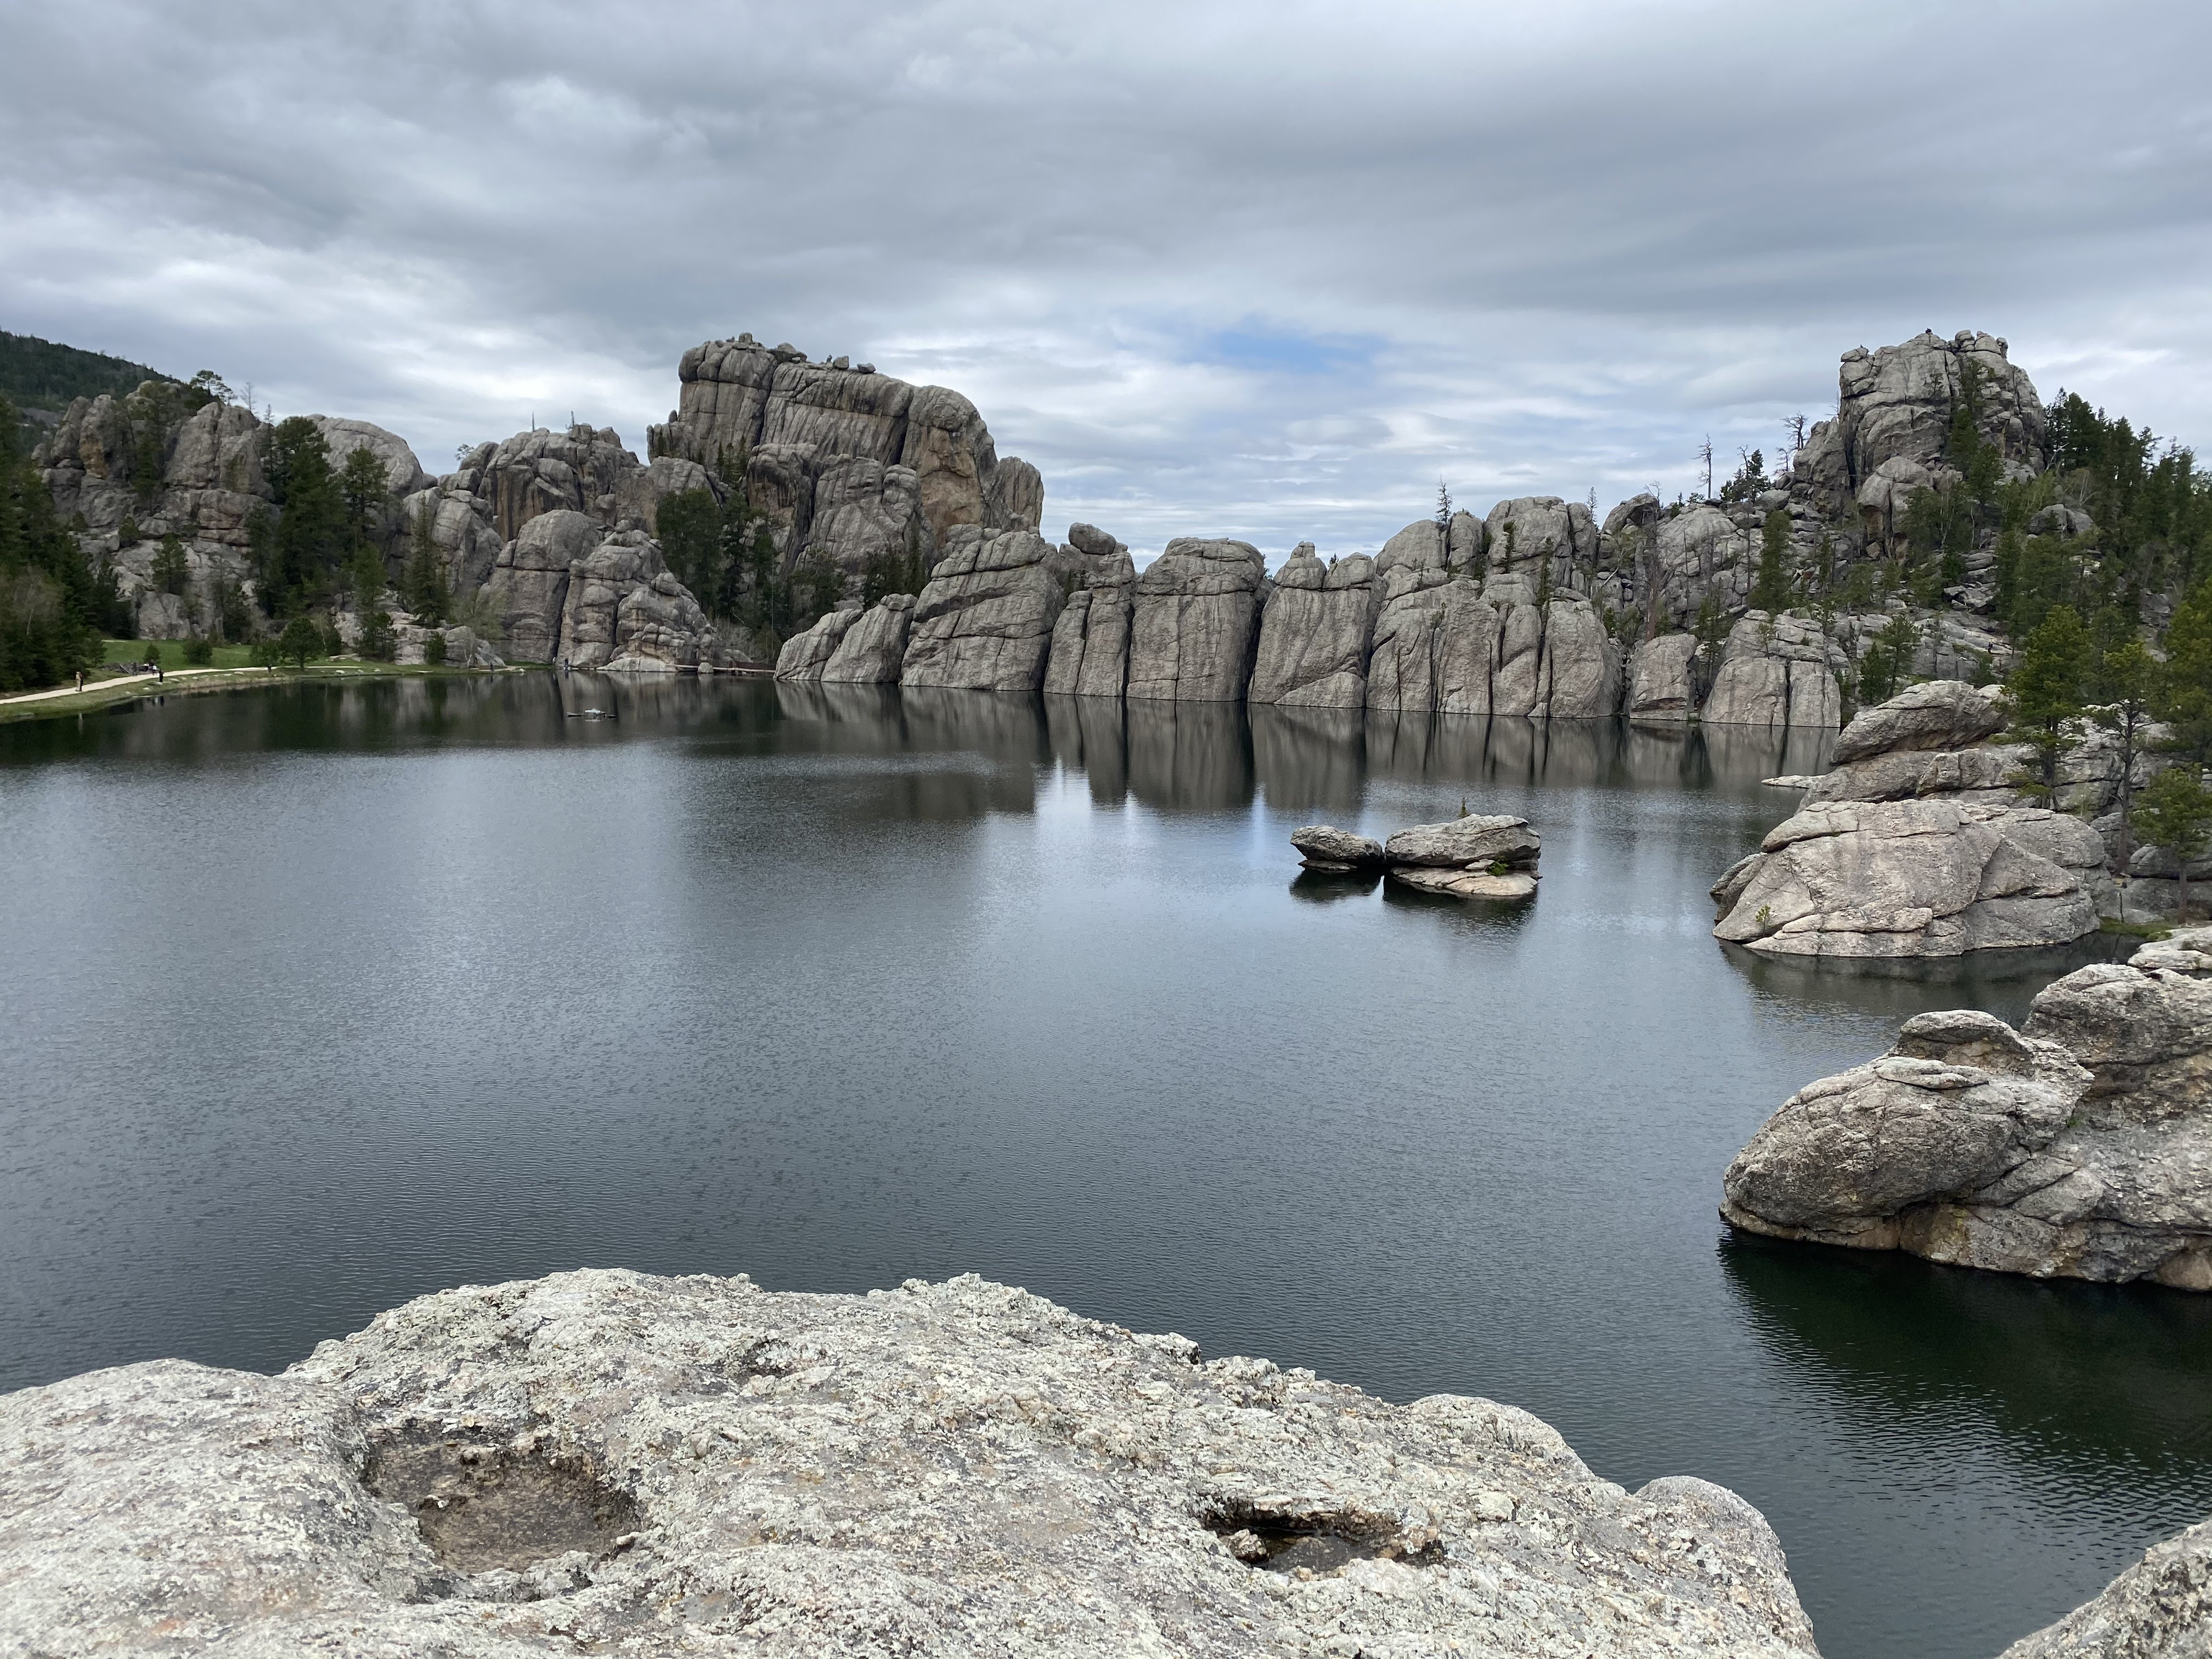 Lake with rock formations